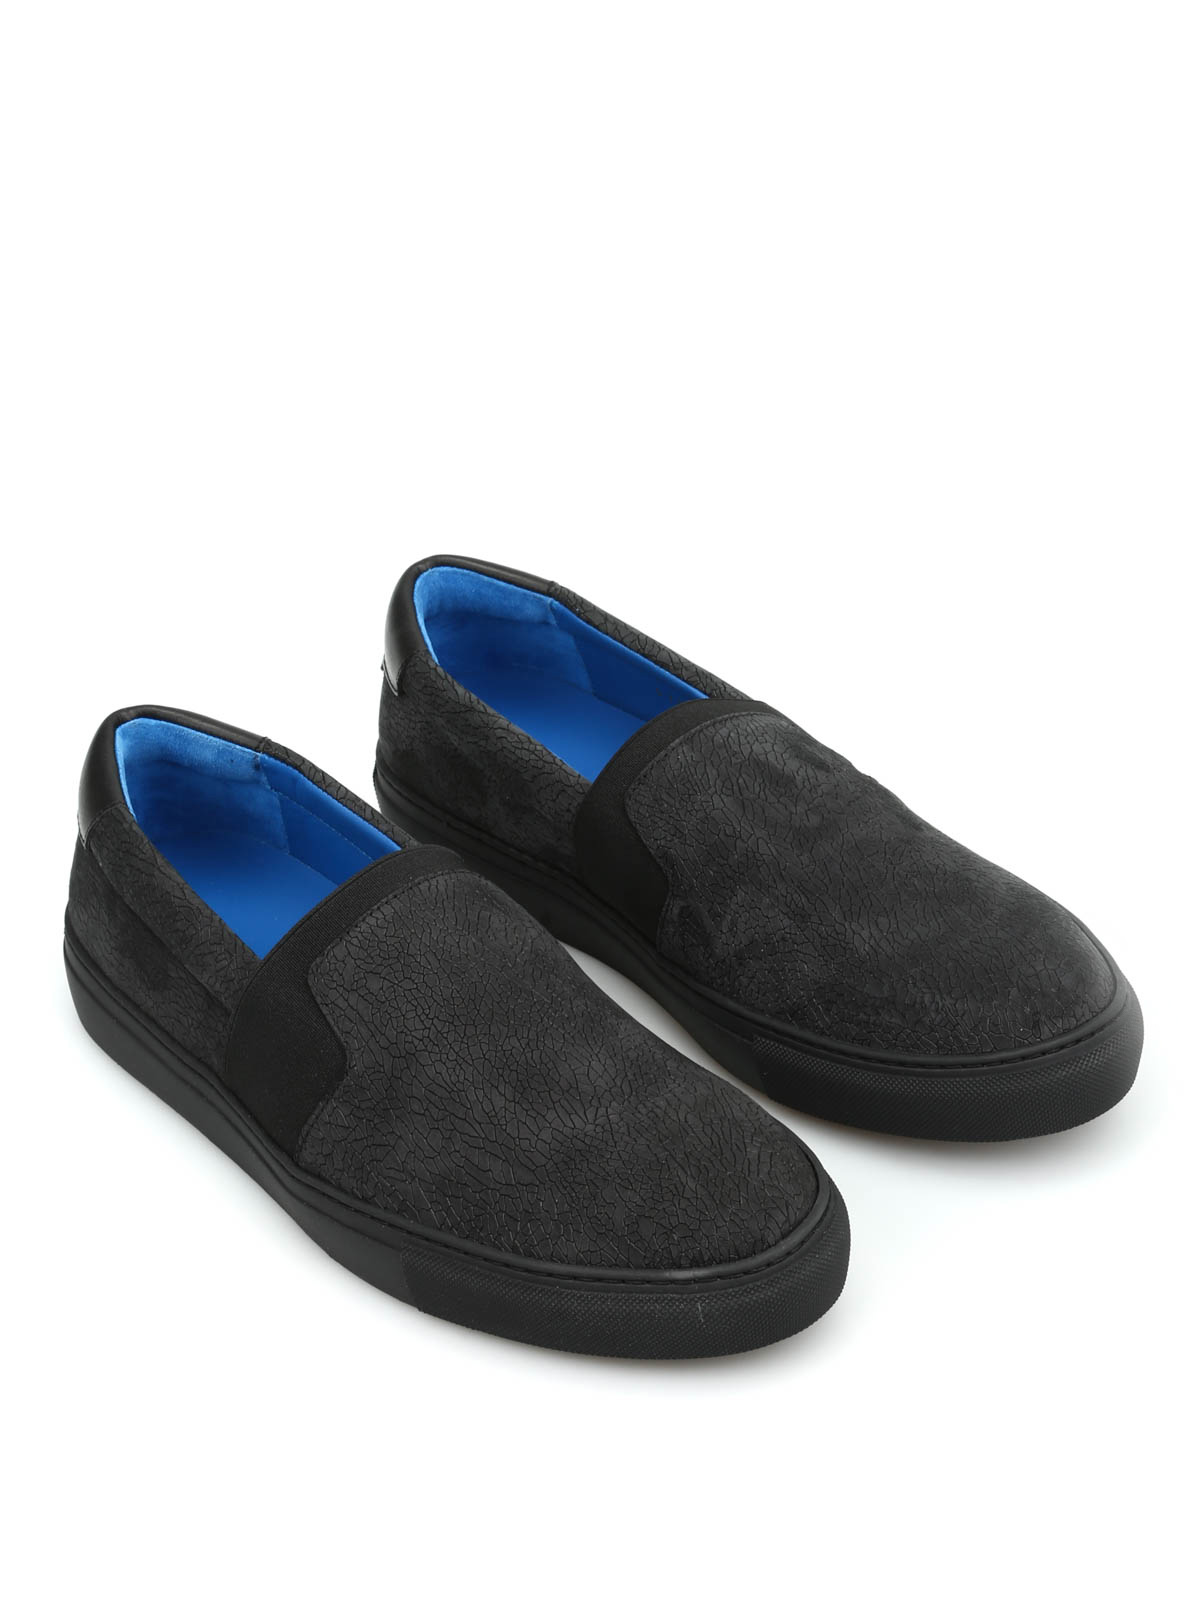 b395f3662ad Balenciaga - Leather slip-on - Loafers   Slippers - 412353 WAX91 1000